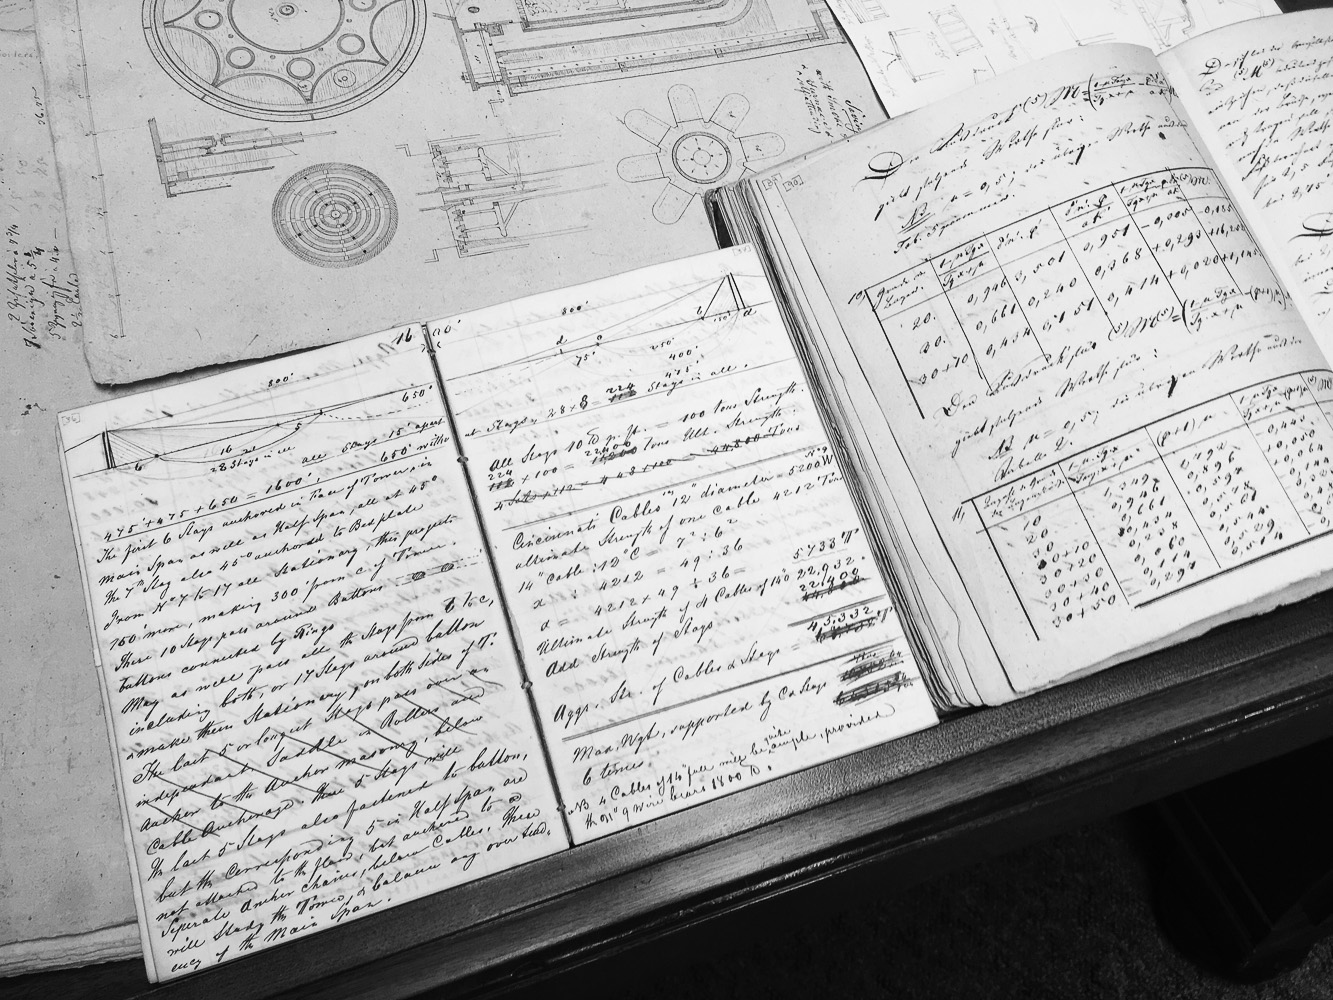 John roebling's notebooks, rutgers university